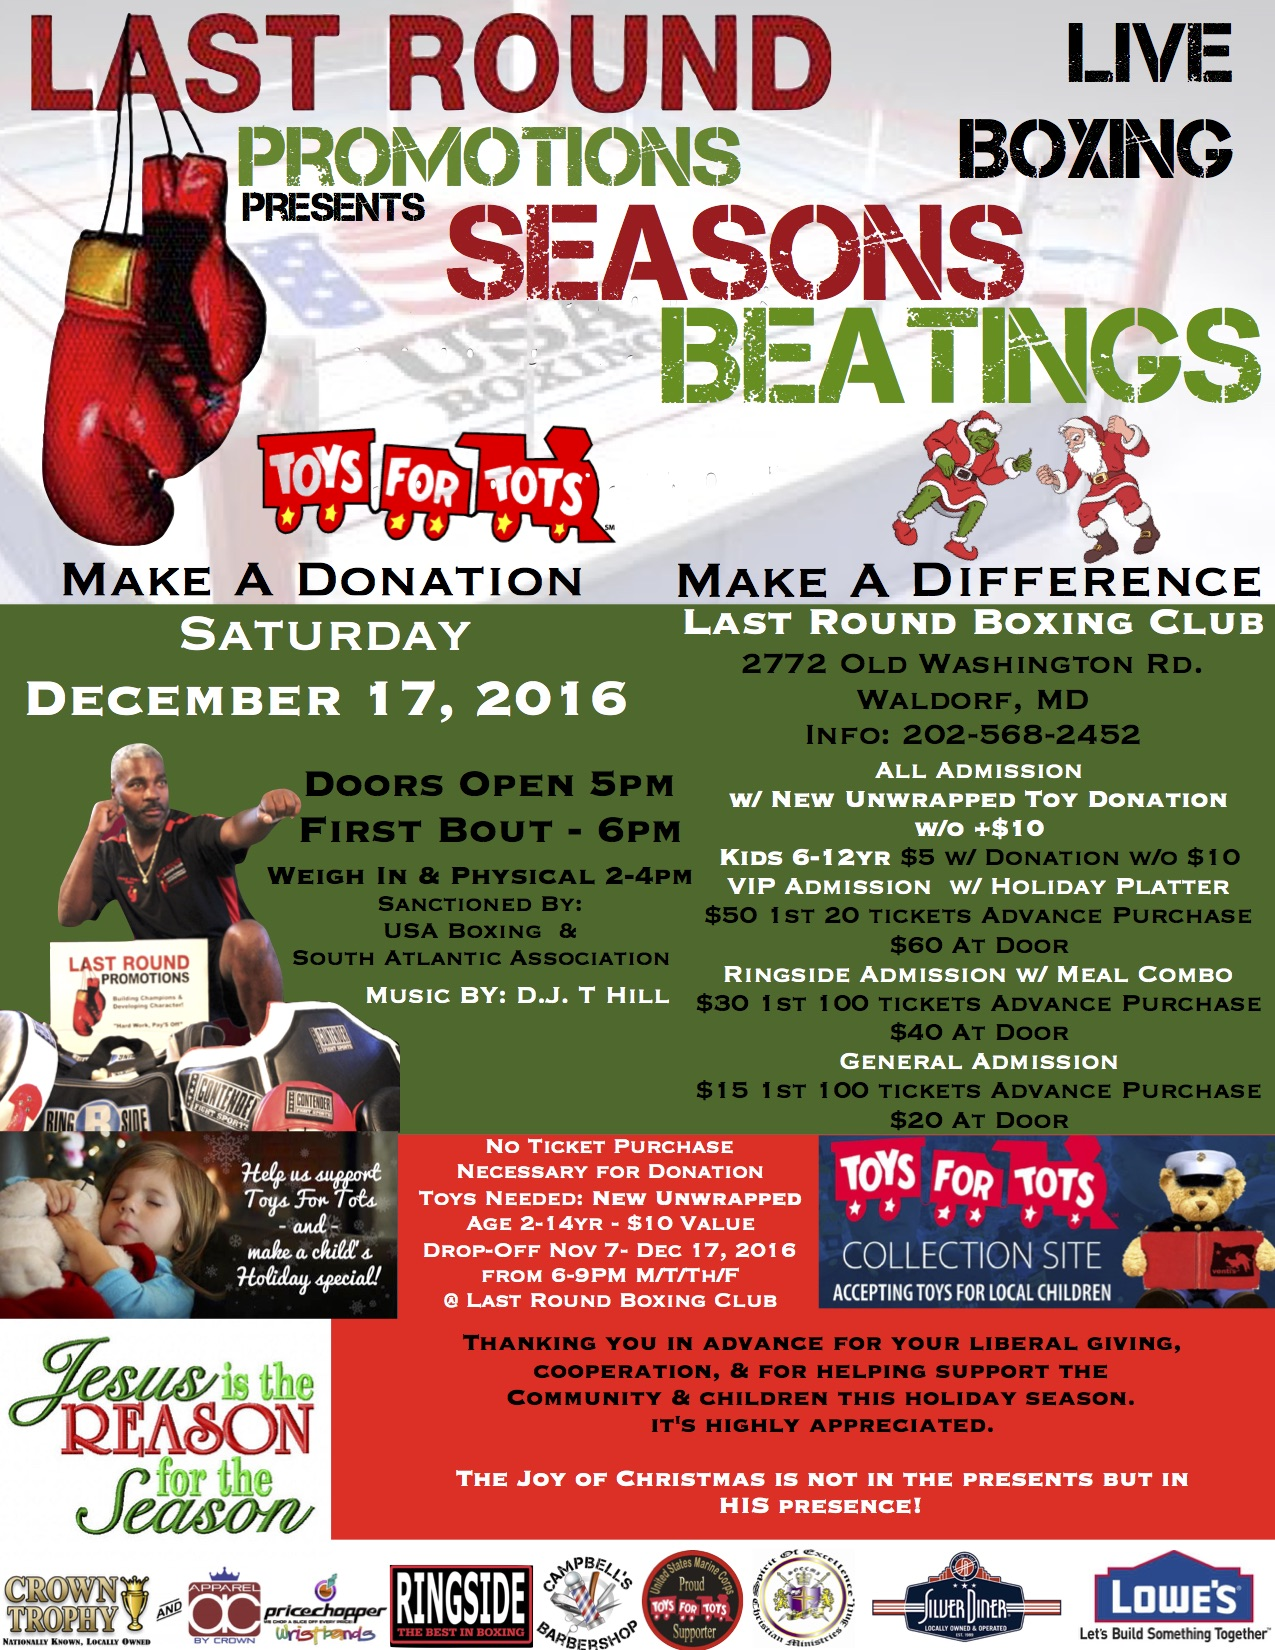 Seasons Beatings Flyer & Additional Information